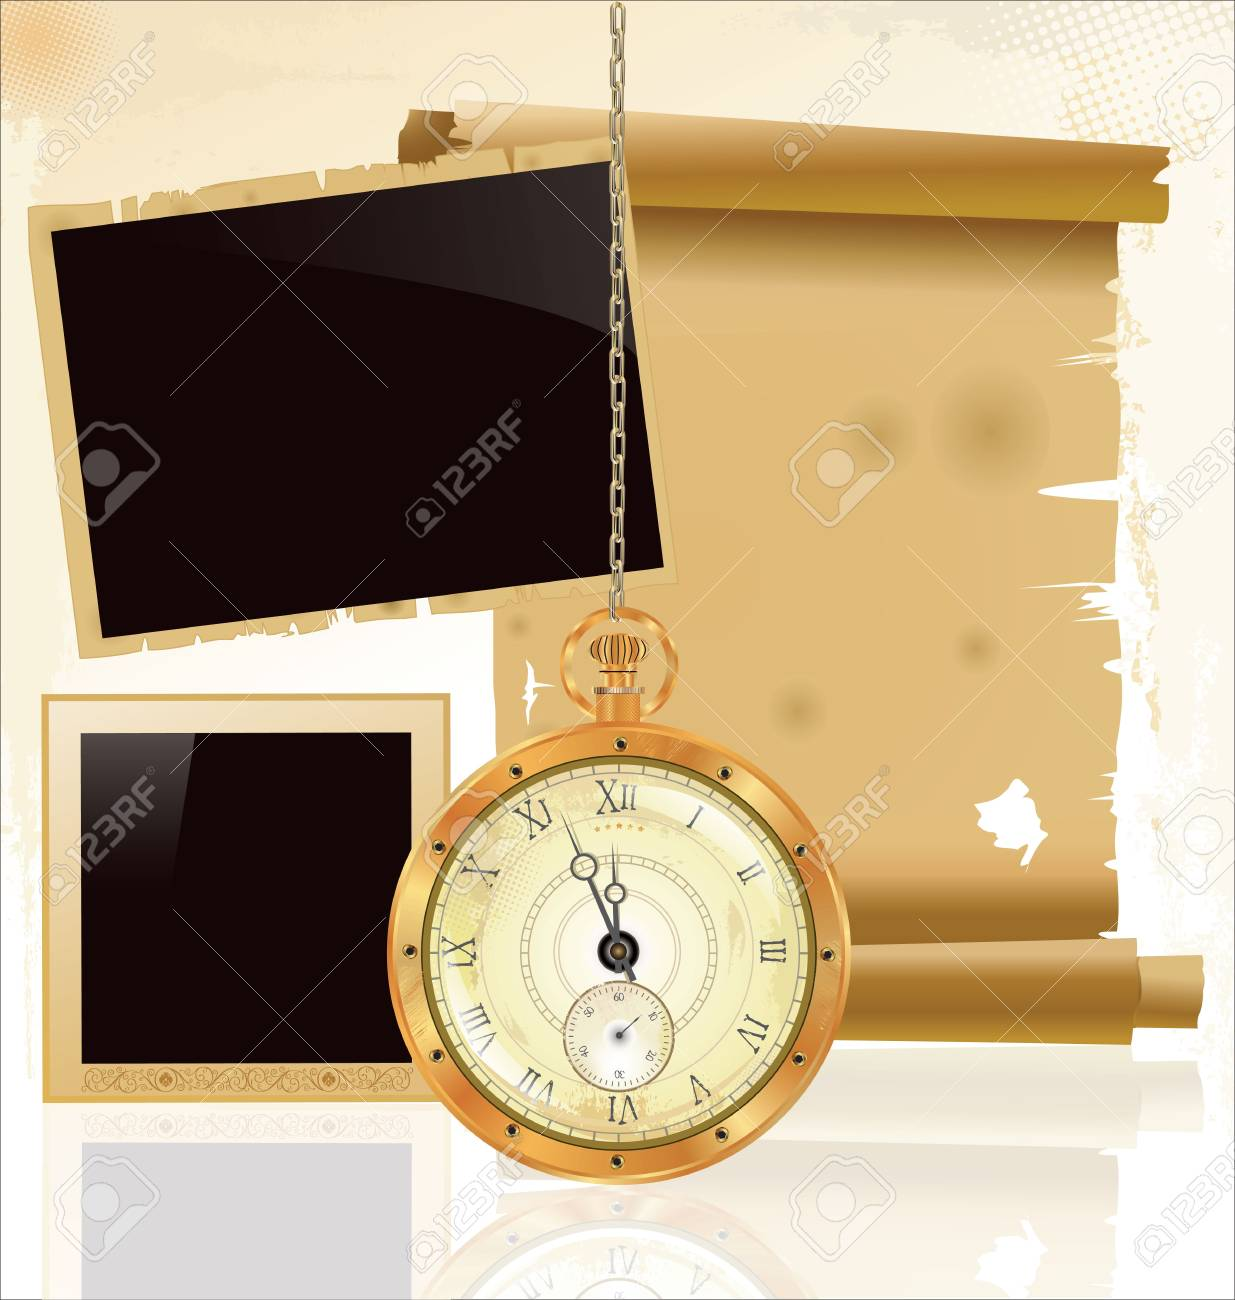 Vintage pocket watch and old paper Stock Vector - 19083532